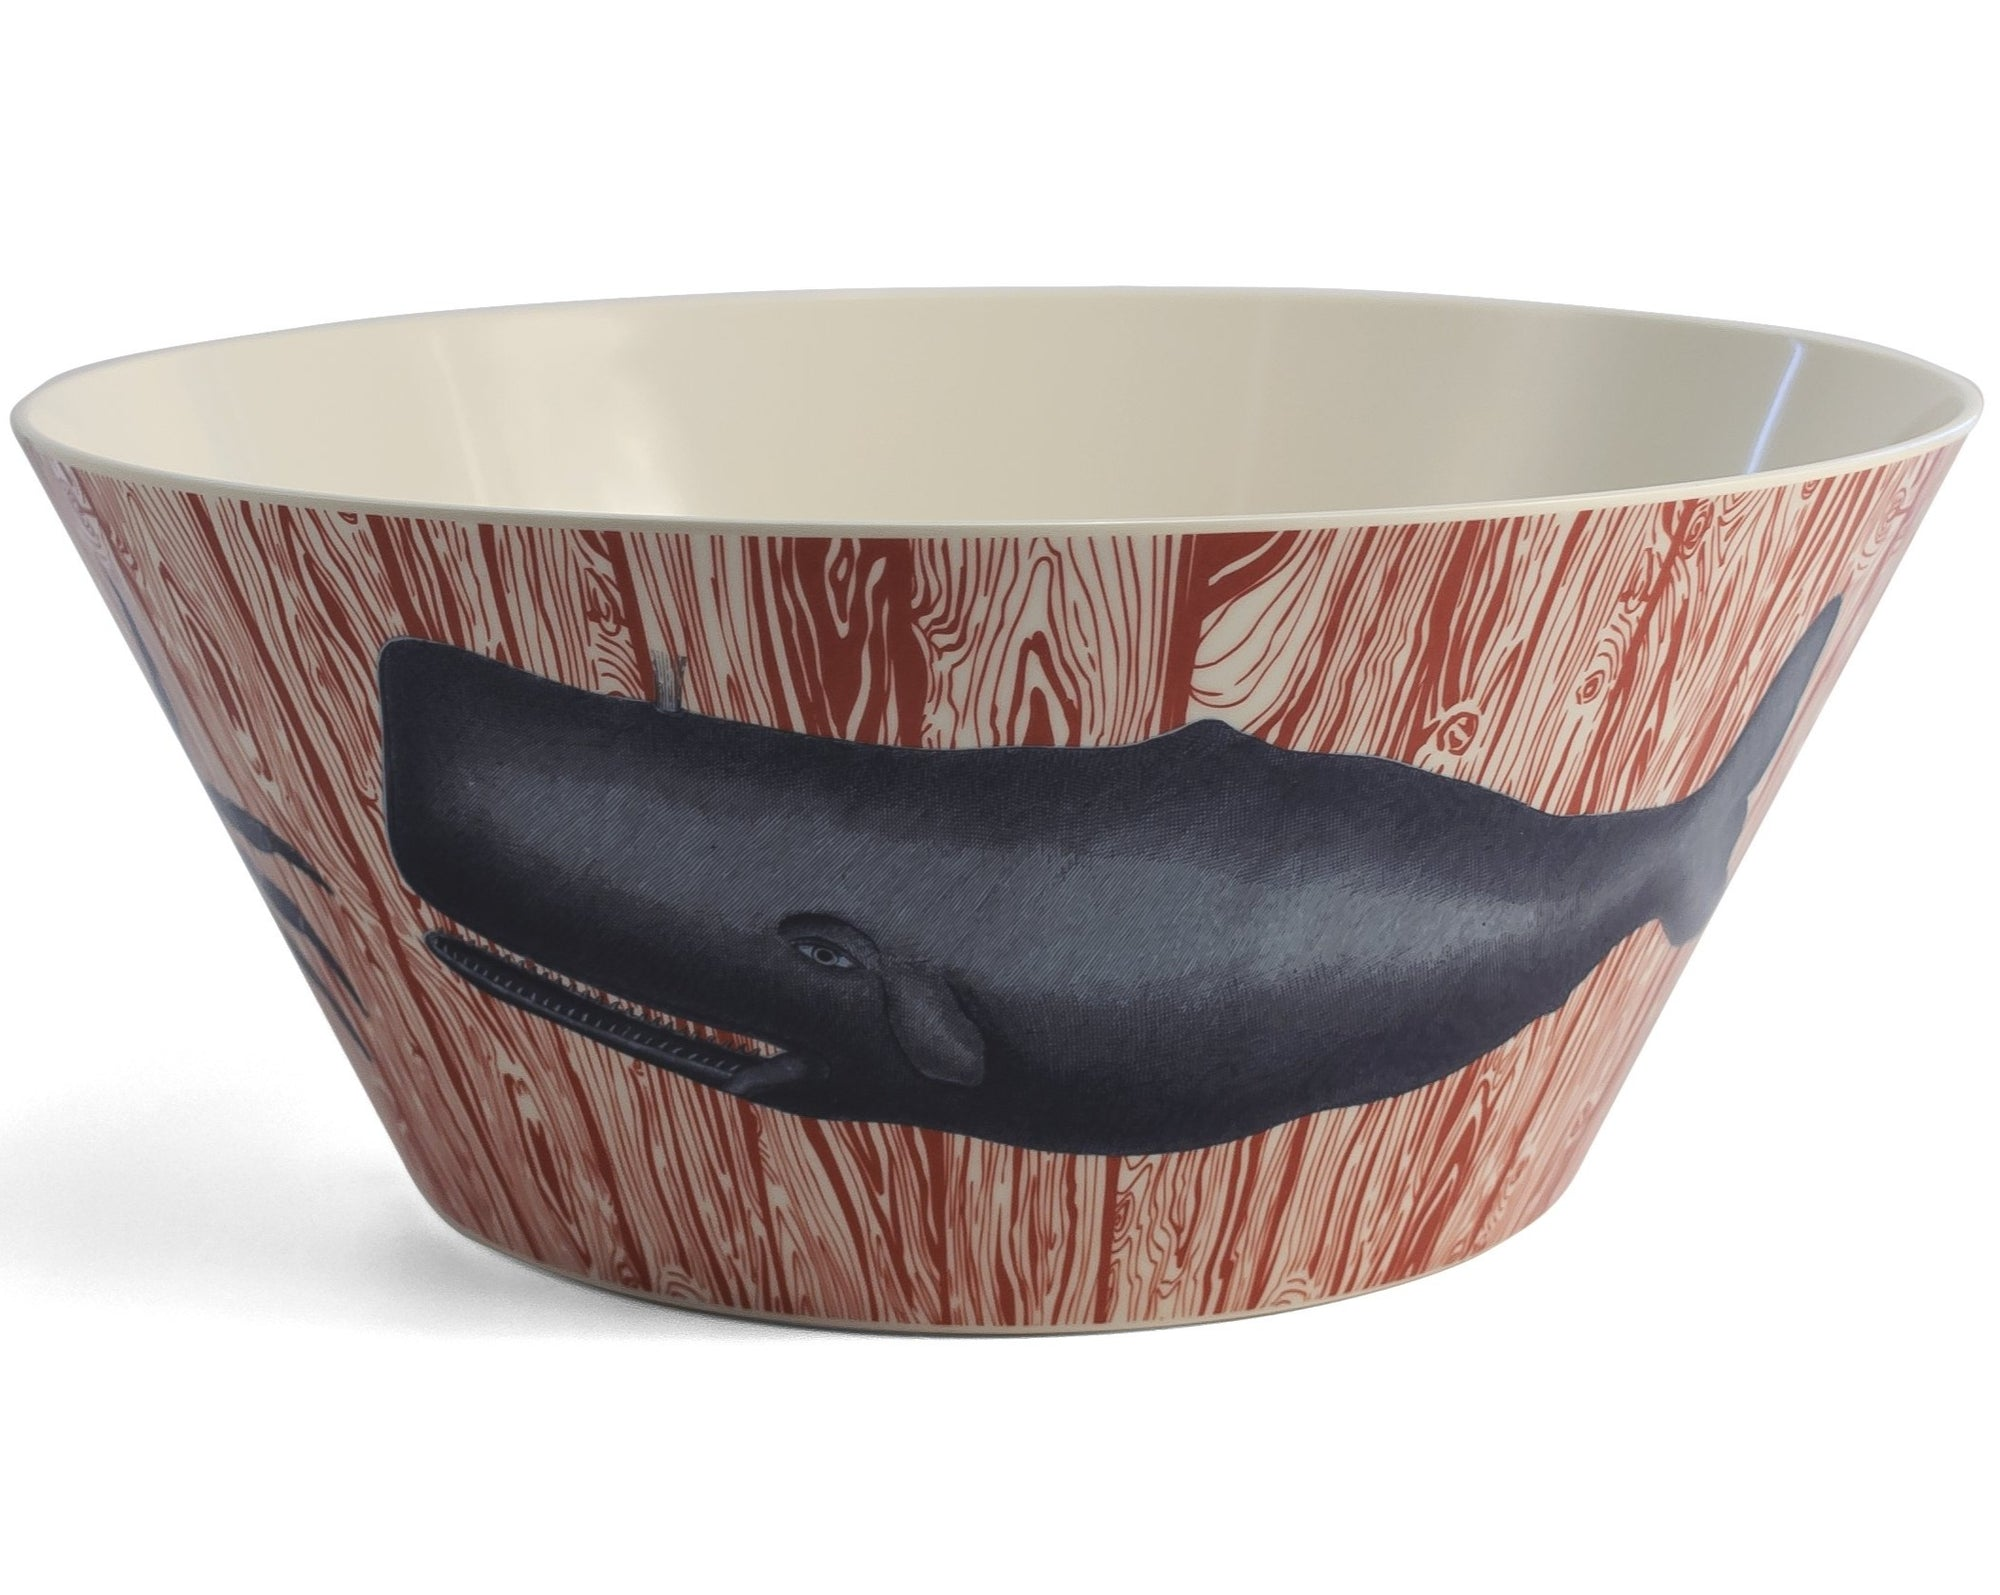 THOMASPAUL - Vineyard Large Serving Bowl